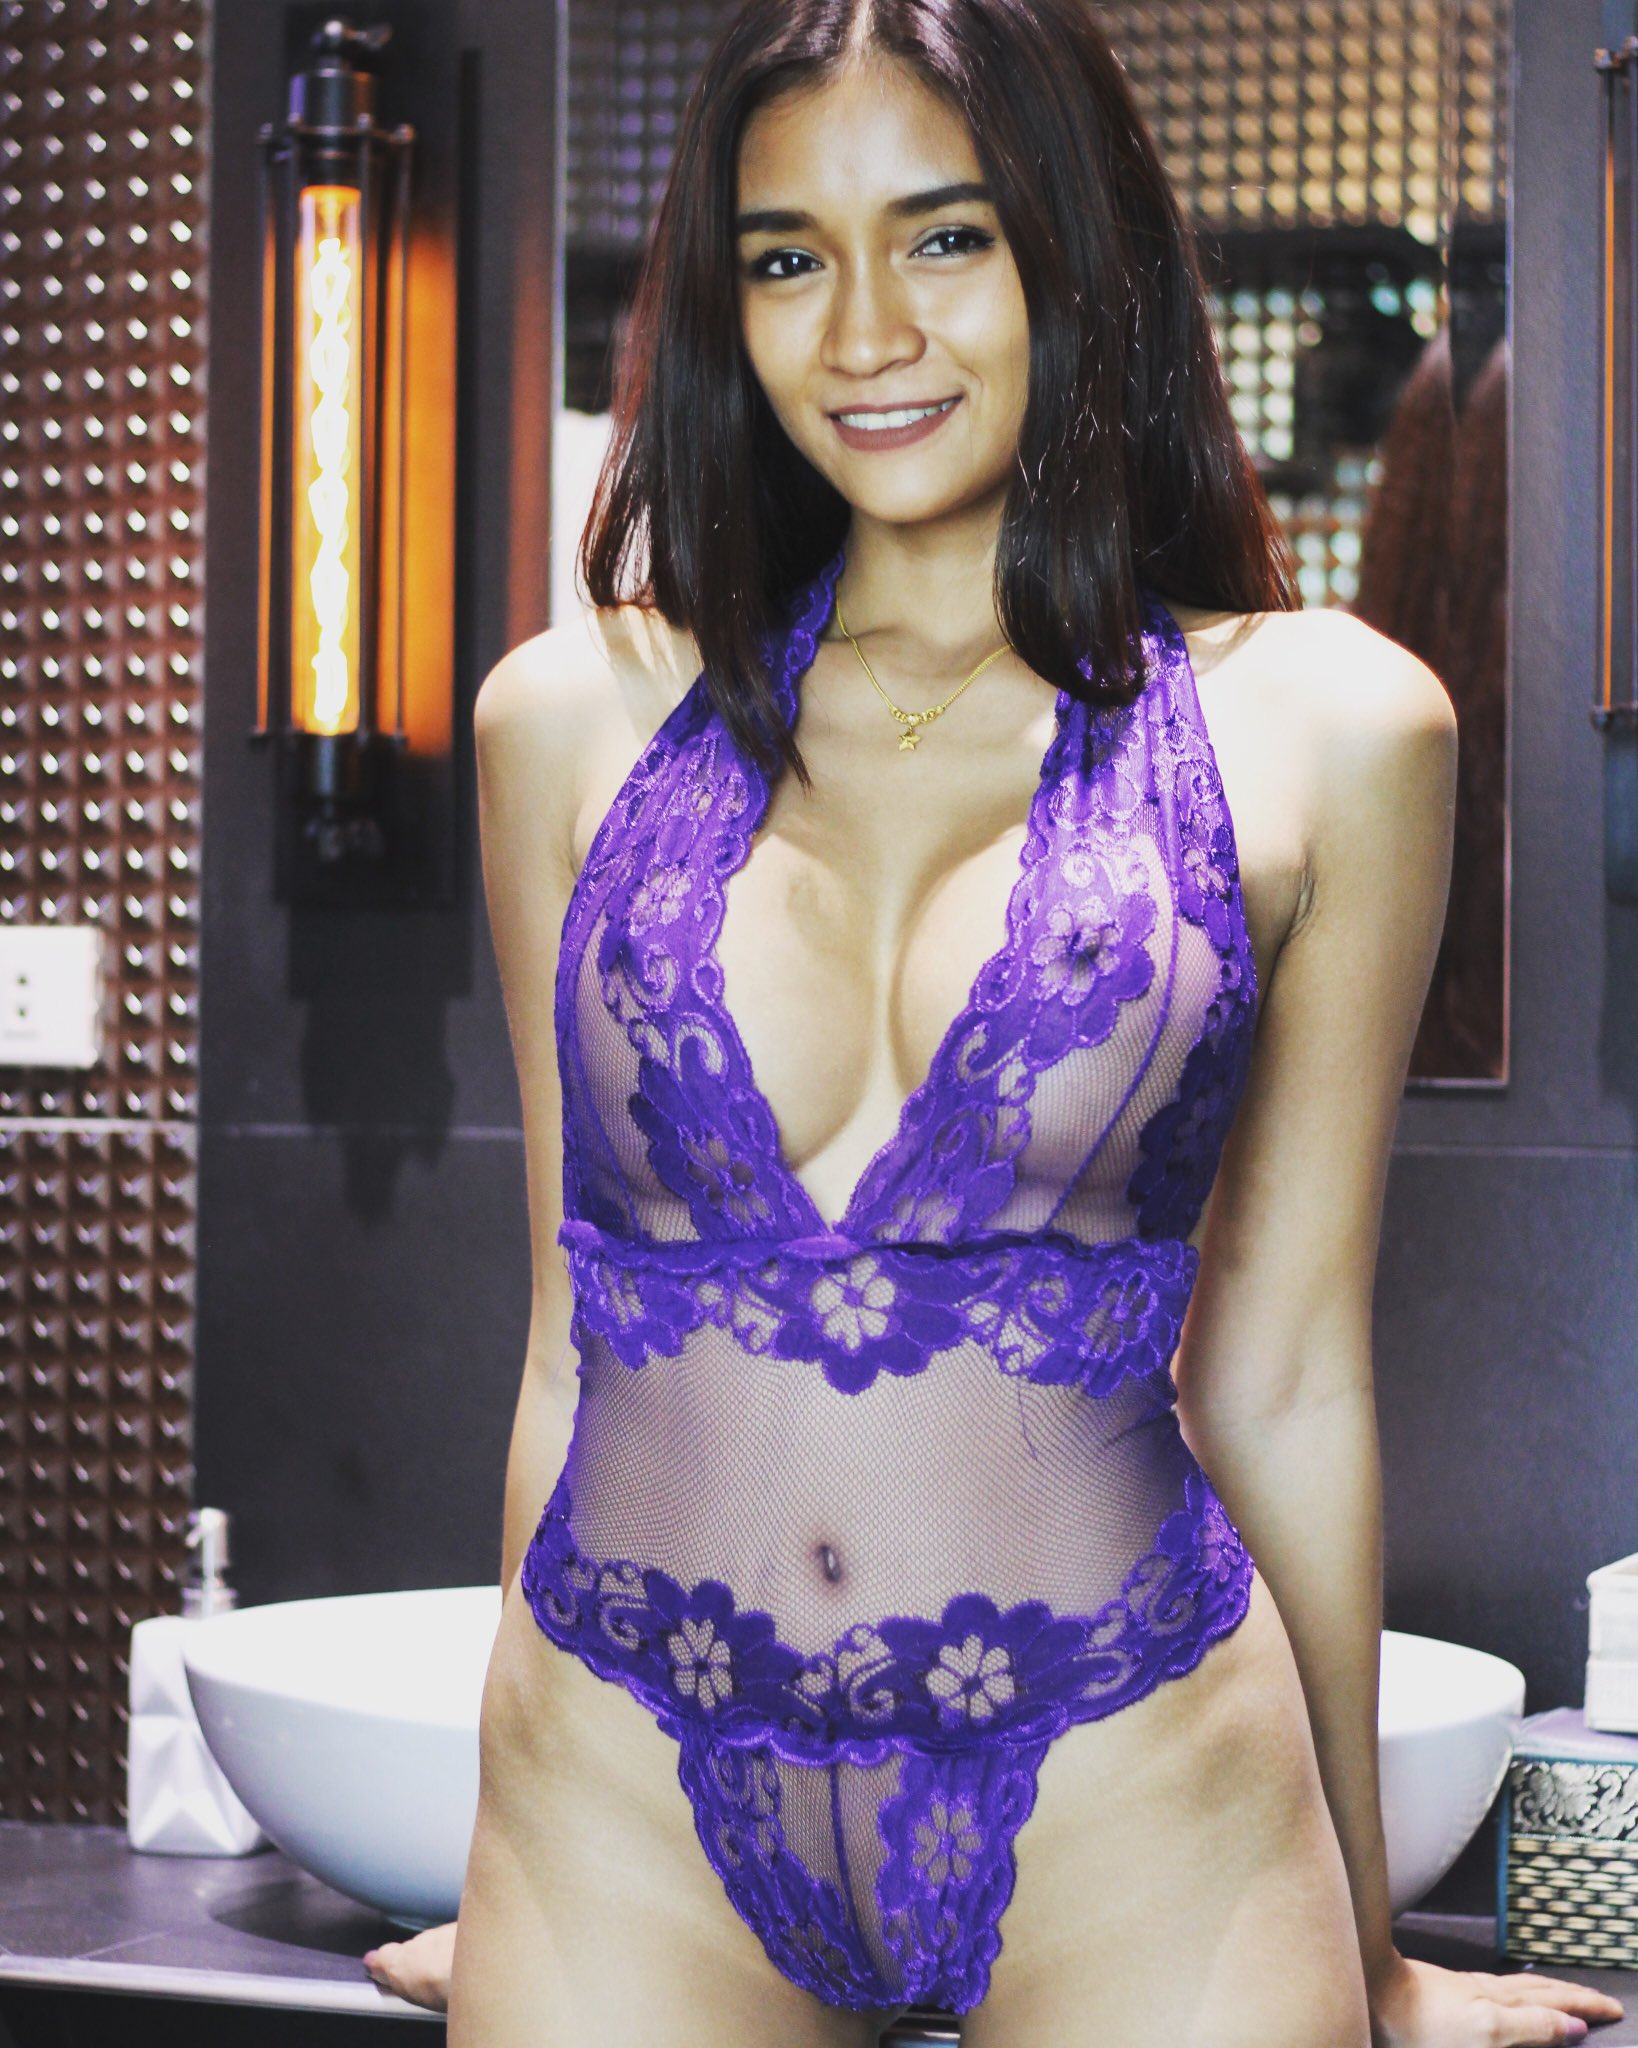 Bella-Thai-nude-sexy-photos-leaked-043-from-sexvcl.net_ Thai model Bella Thai nude sexy photos leaked